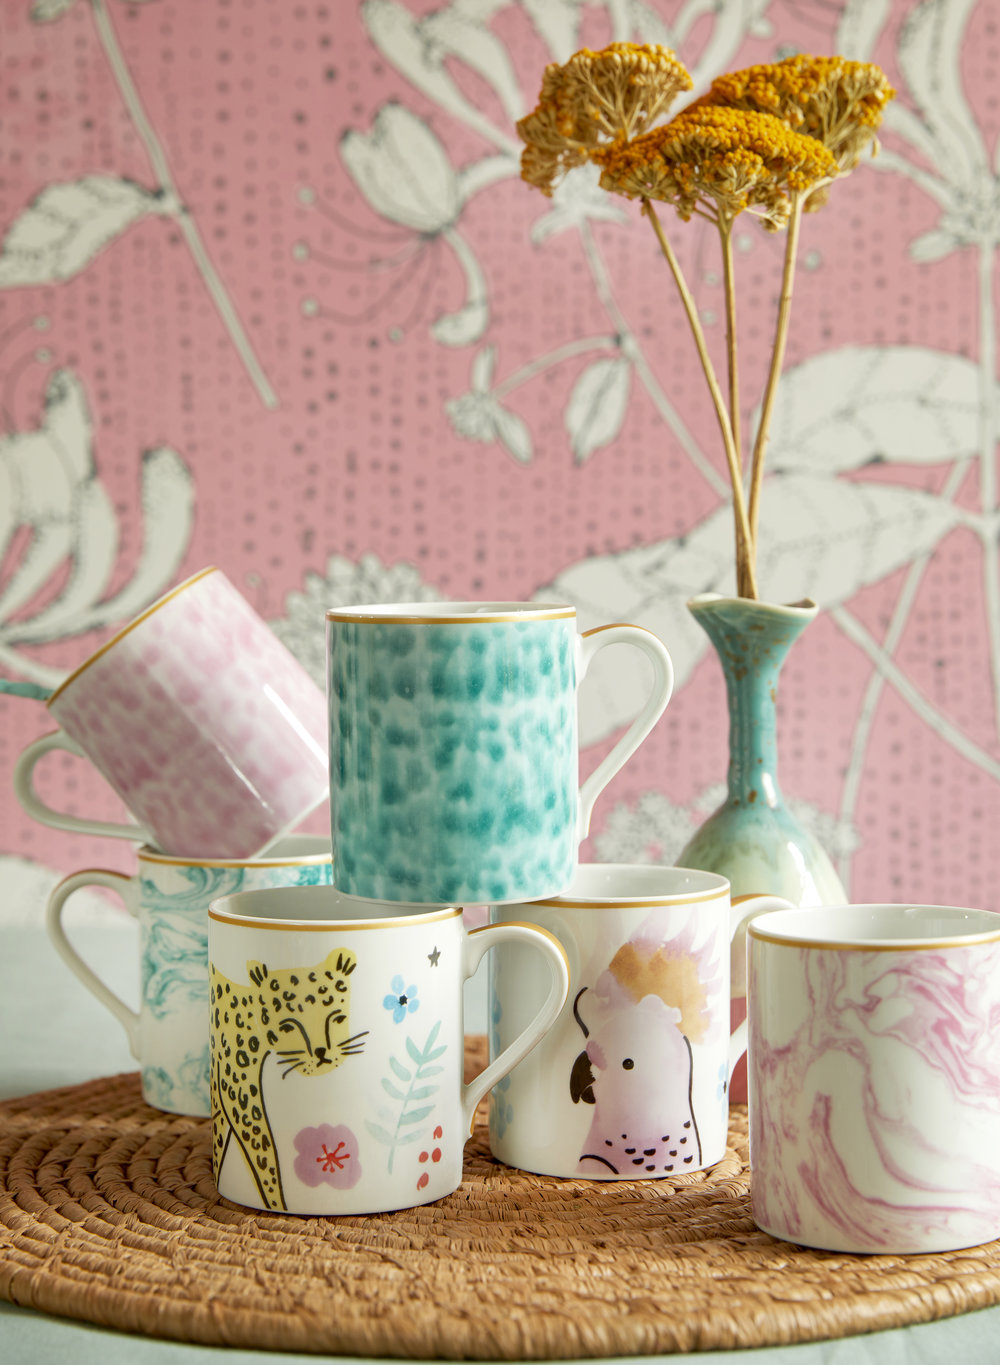 RICE everyday magic porcelain collection